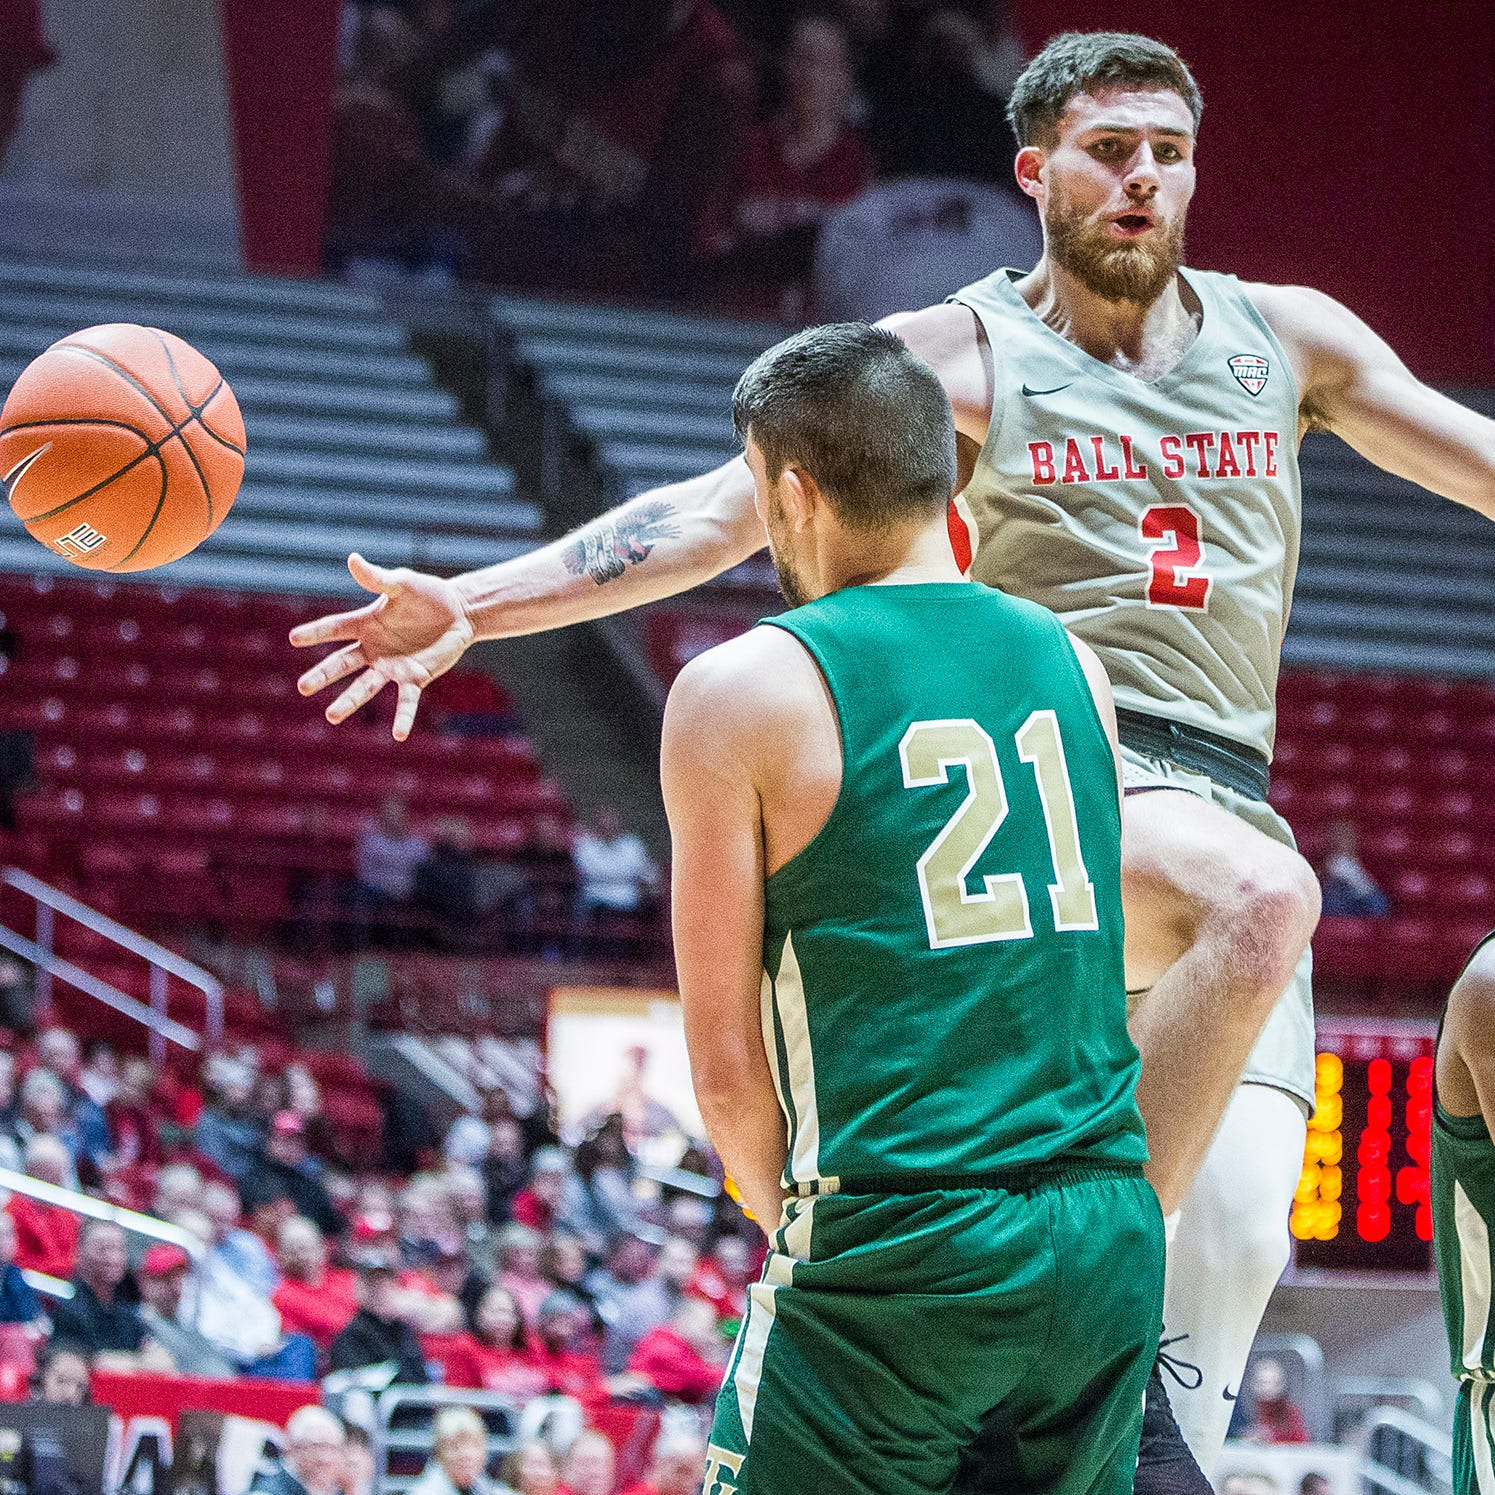 Notes: Tayler Persons playing for big money at Final Four; Ball State baseball nationally ranked